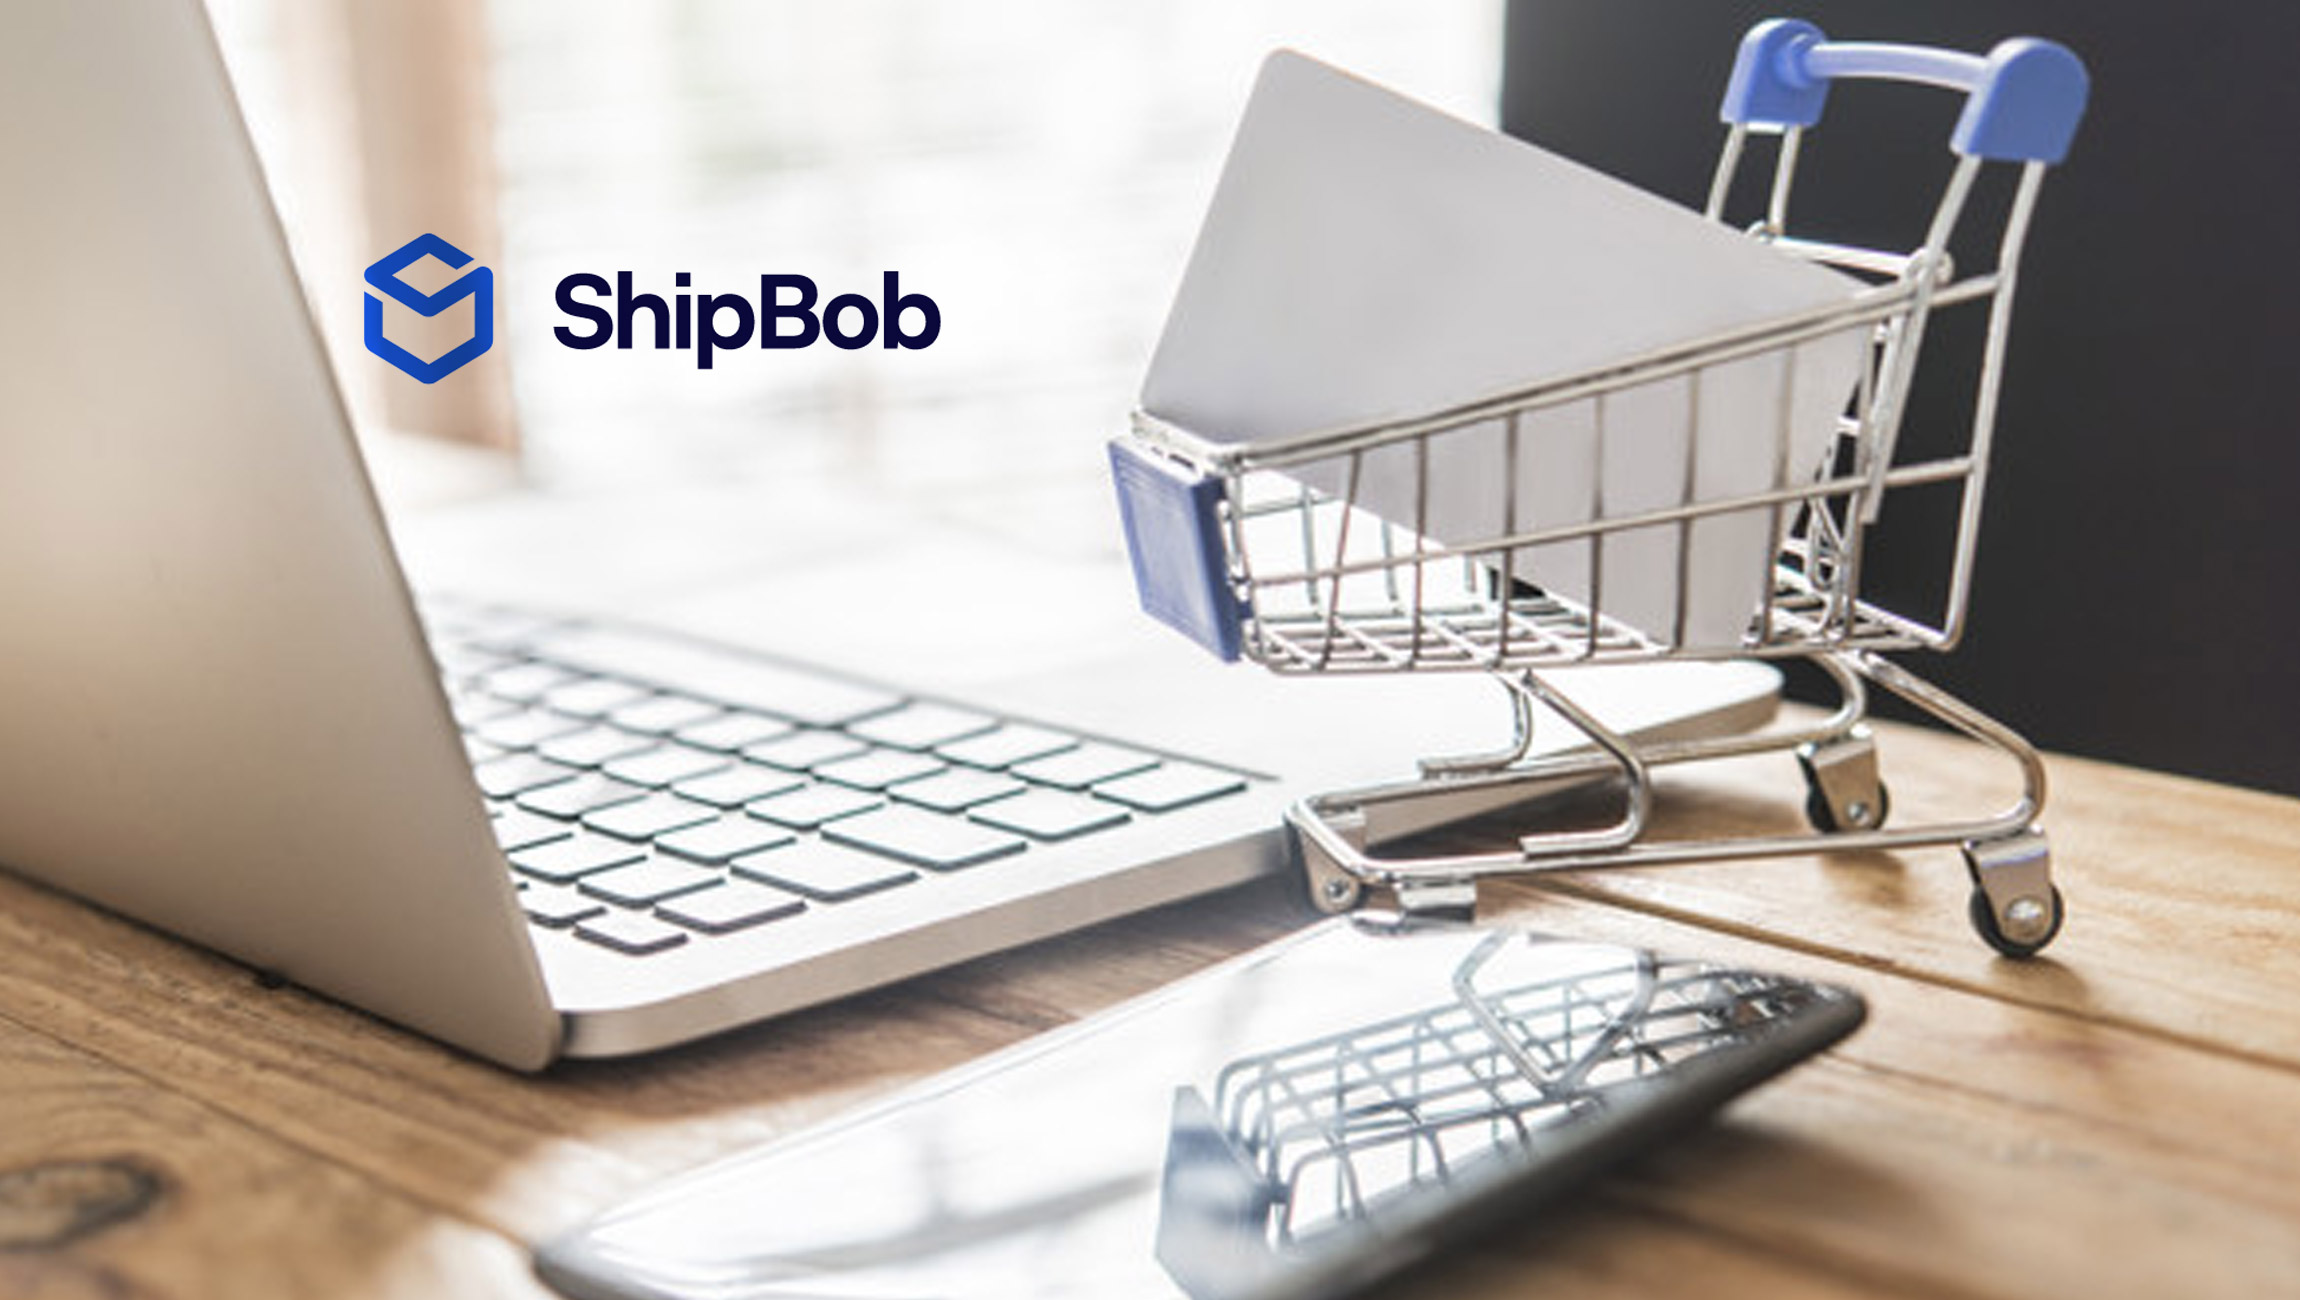 ShipBob Joins Shopify Plus as Certified App Partner for Order Fulfillment & Ecommerce Shipping 1